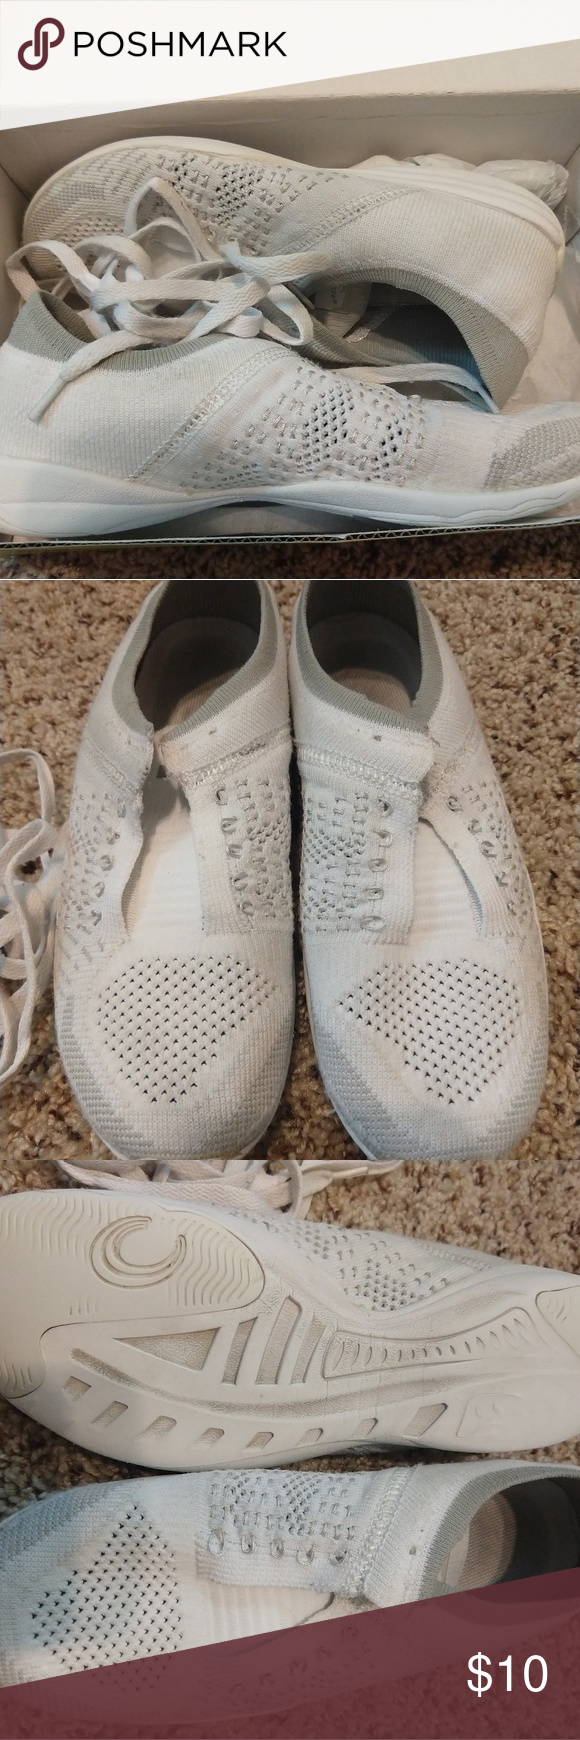 cheer shoe Highlyte | Cheer shoes